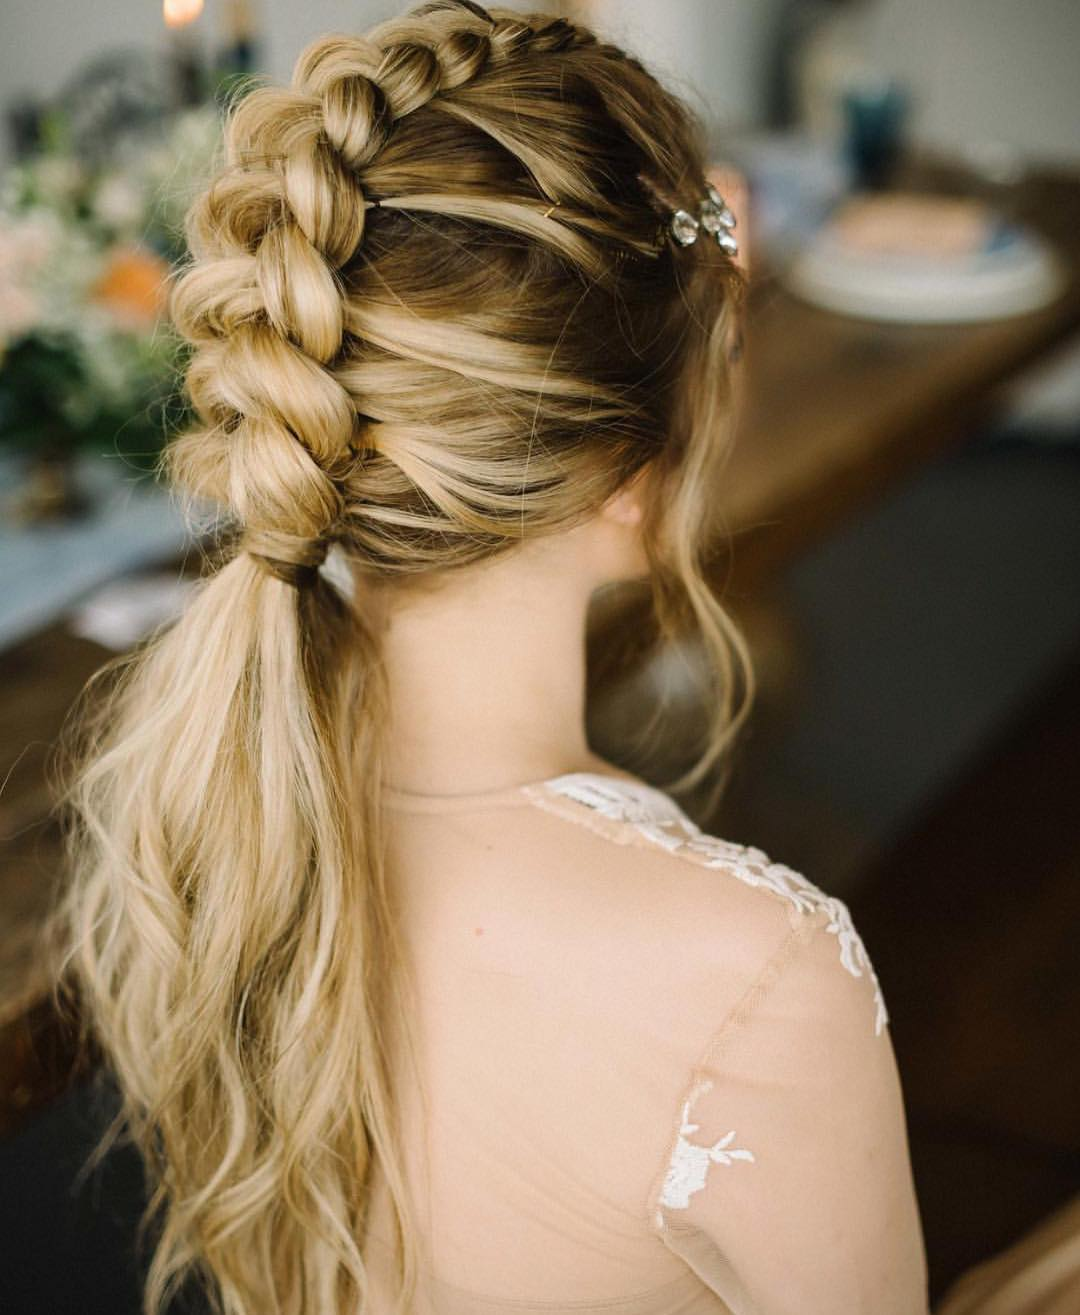 10 braided hairstyles for long hair weddings festivals holiday hair ideas popular haircuts. Black Bedroom Furniture Sets. Home Design Ideas